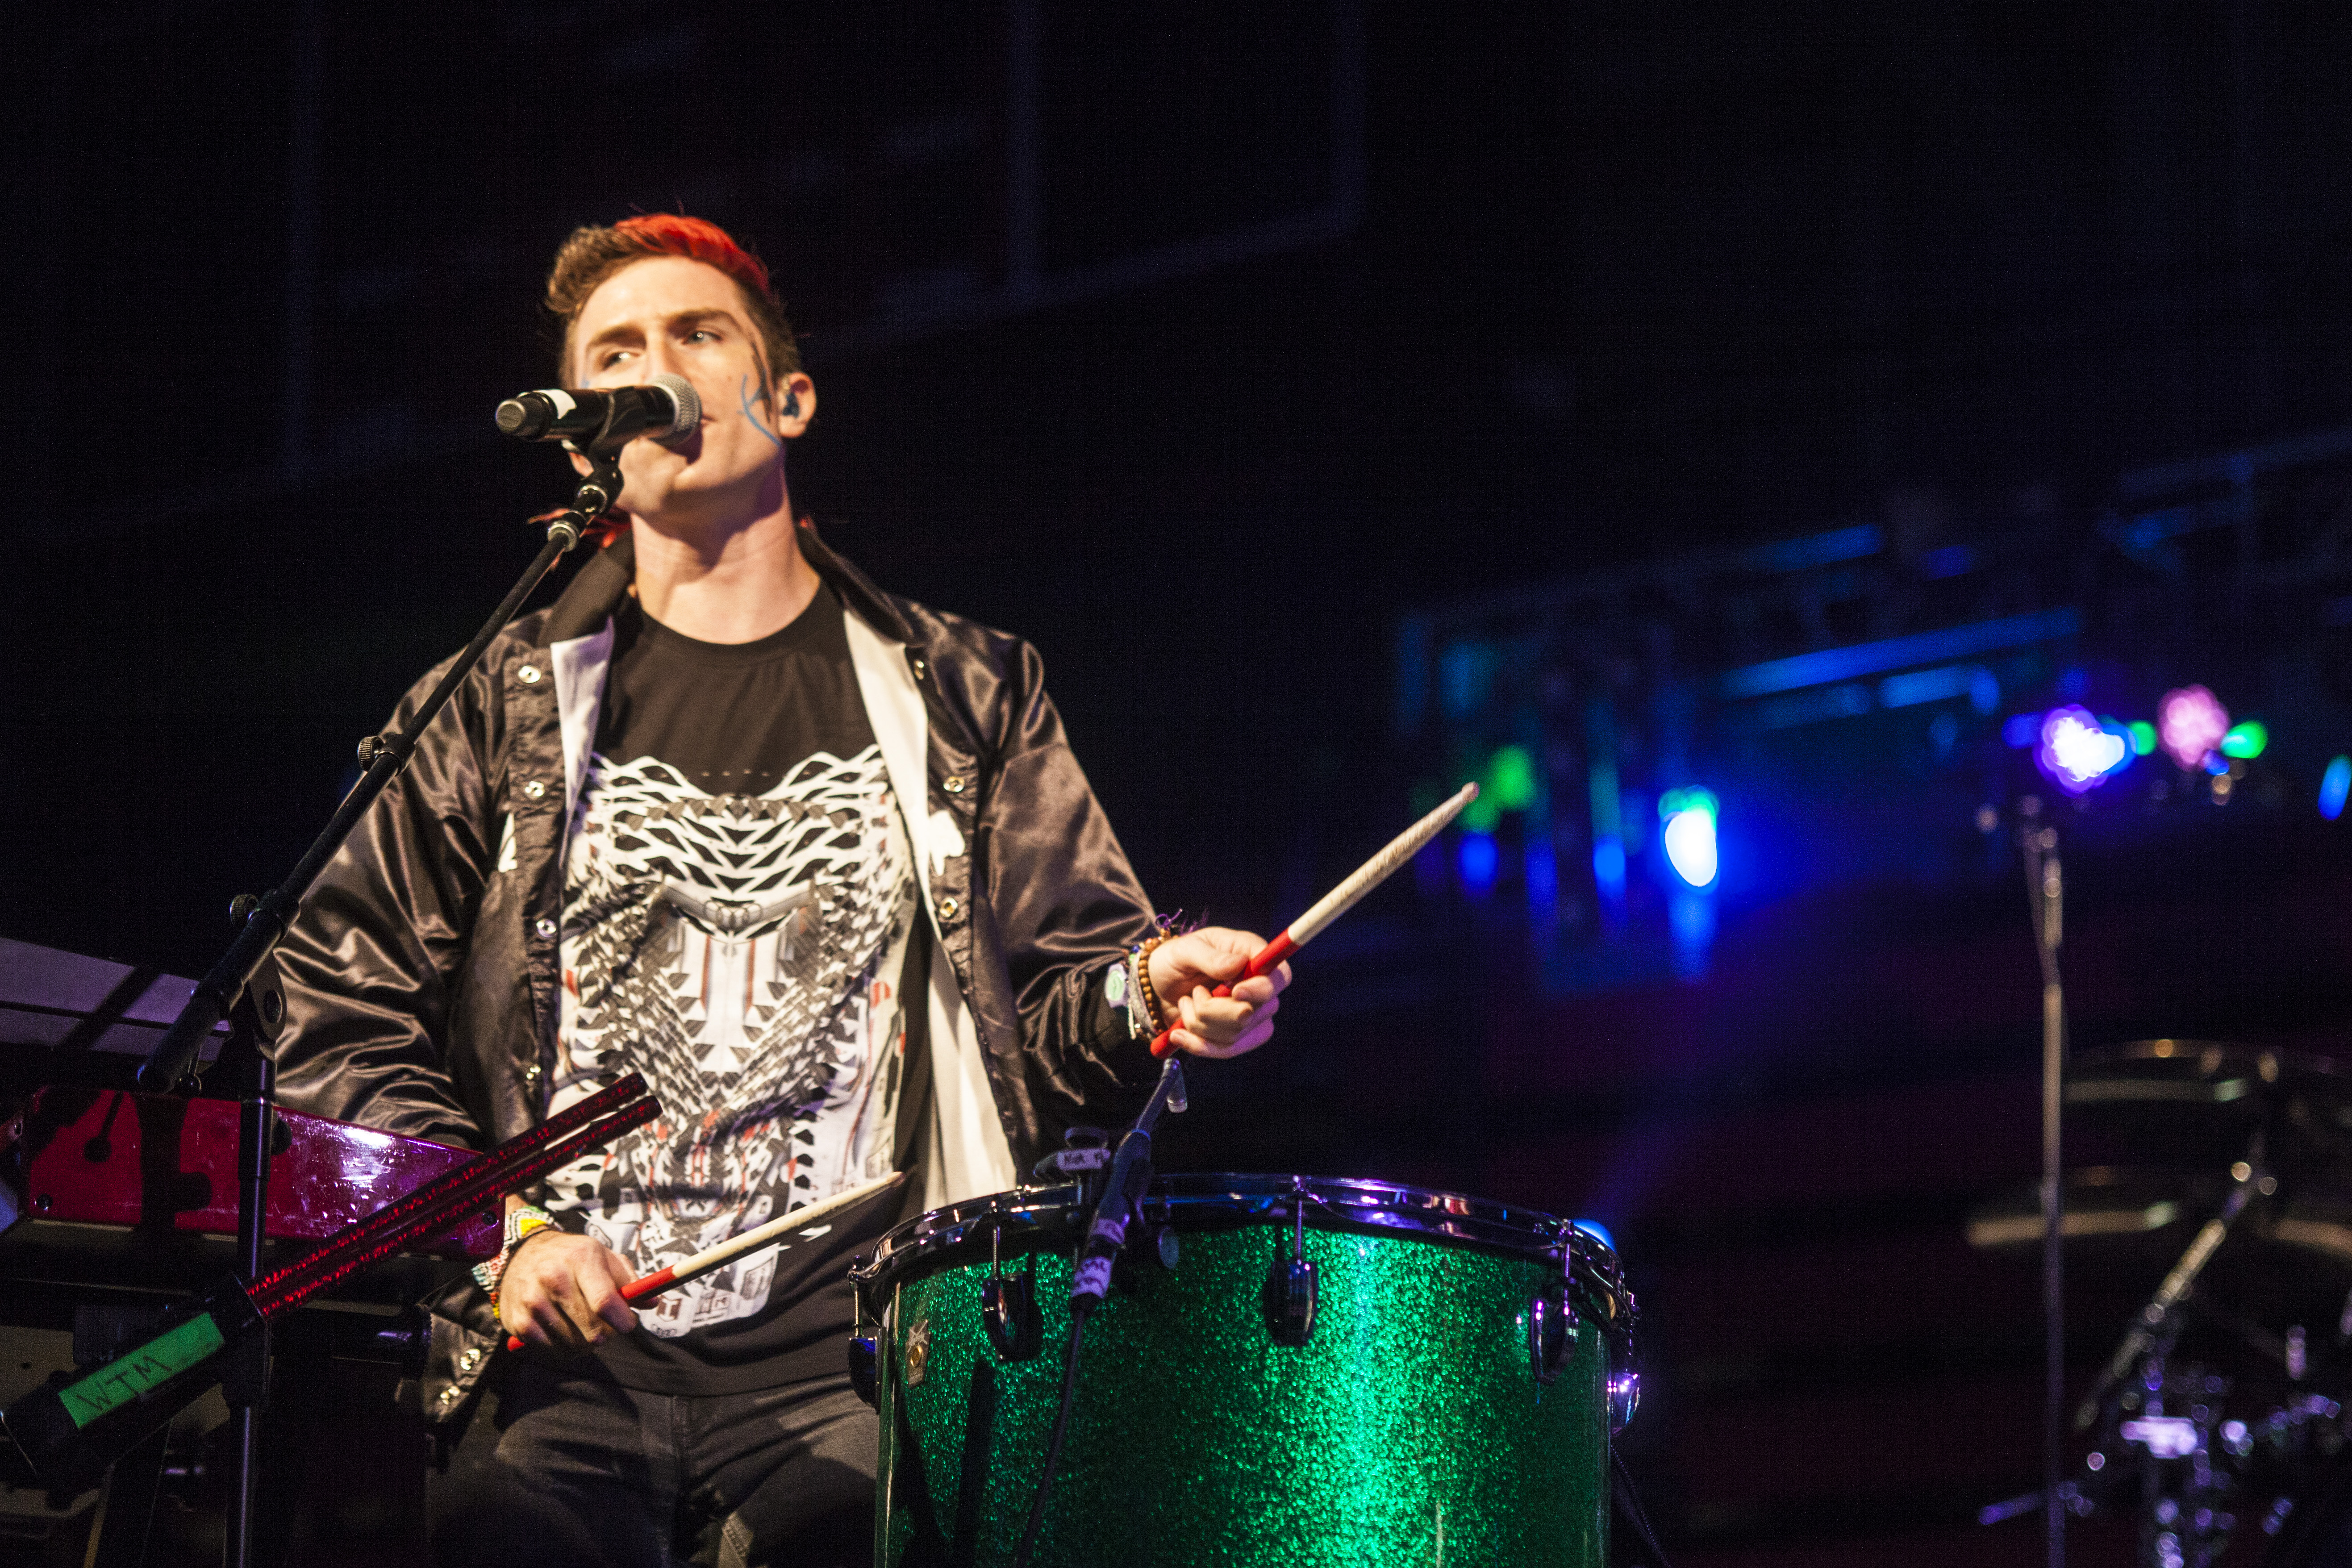 Nicholas Petricca played on the drums during his performance. KRYSTEN MASSA/THE STATESMAN